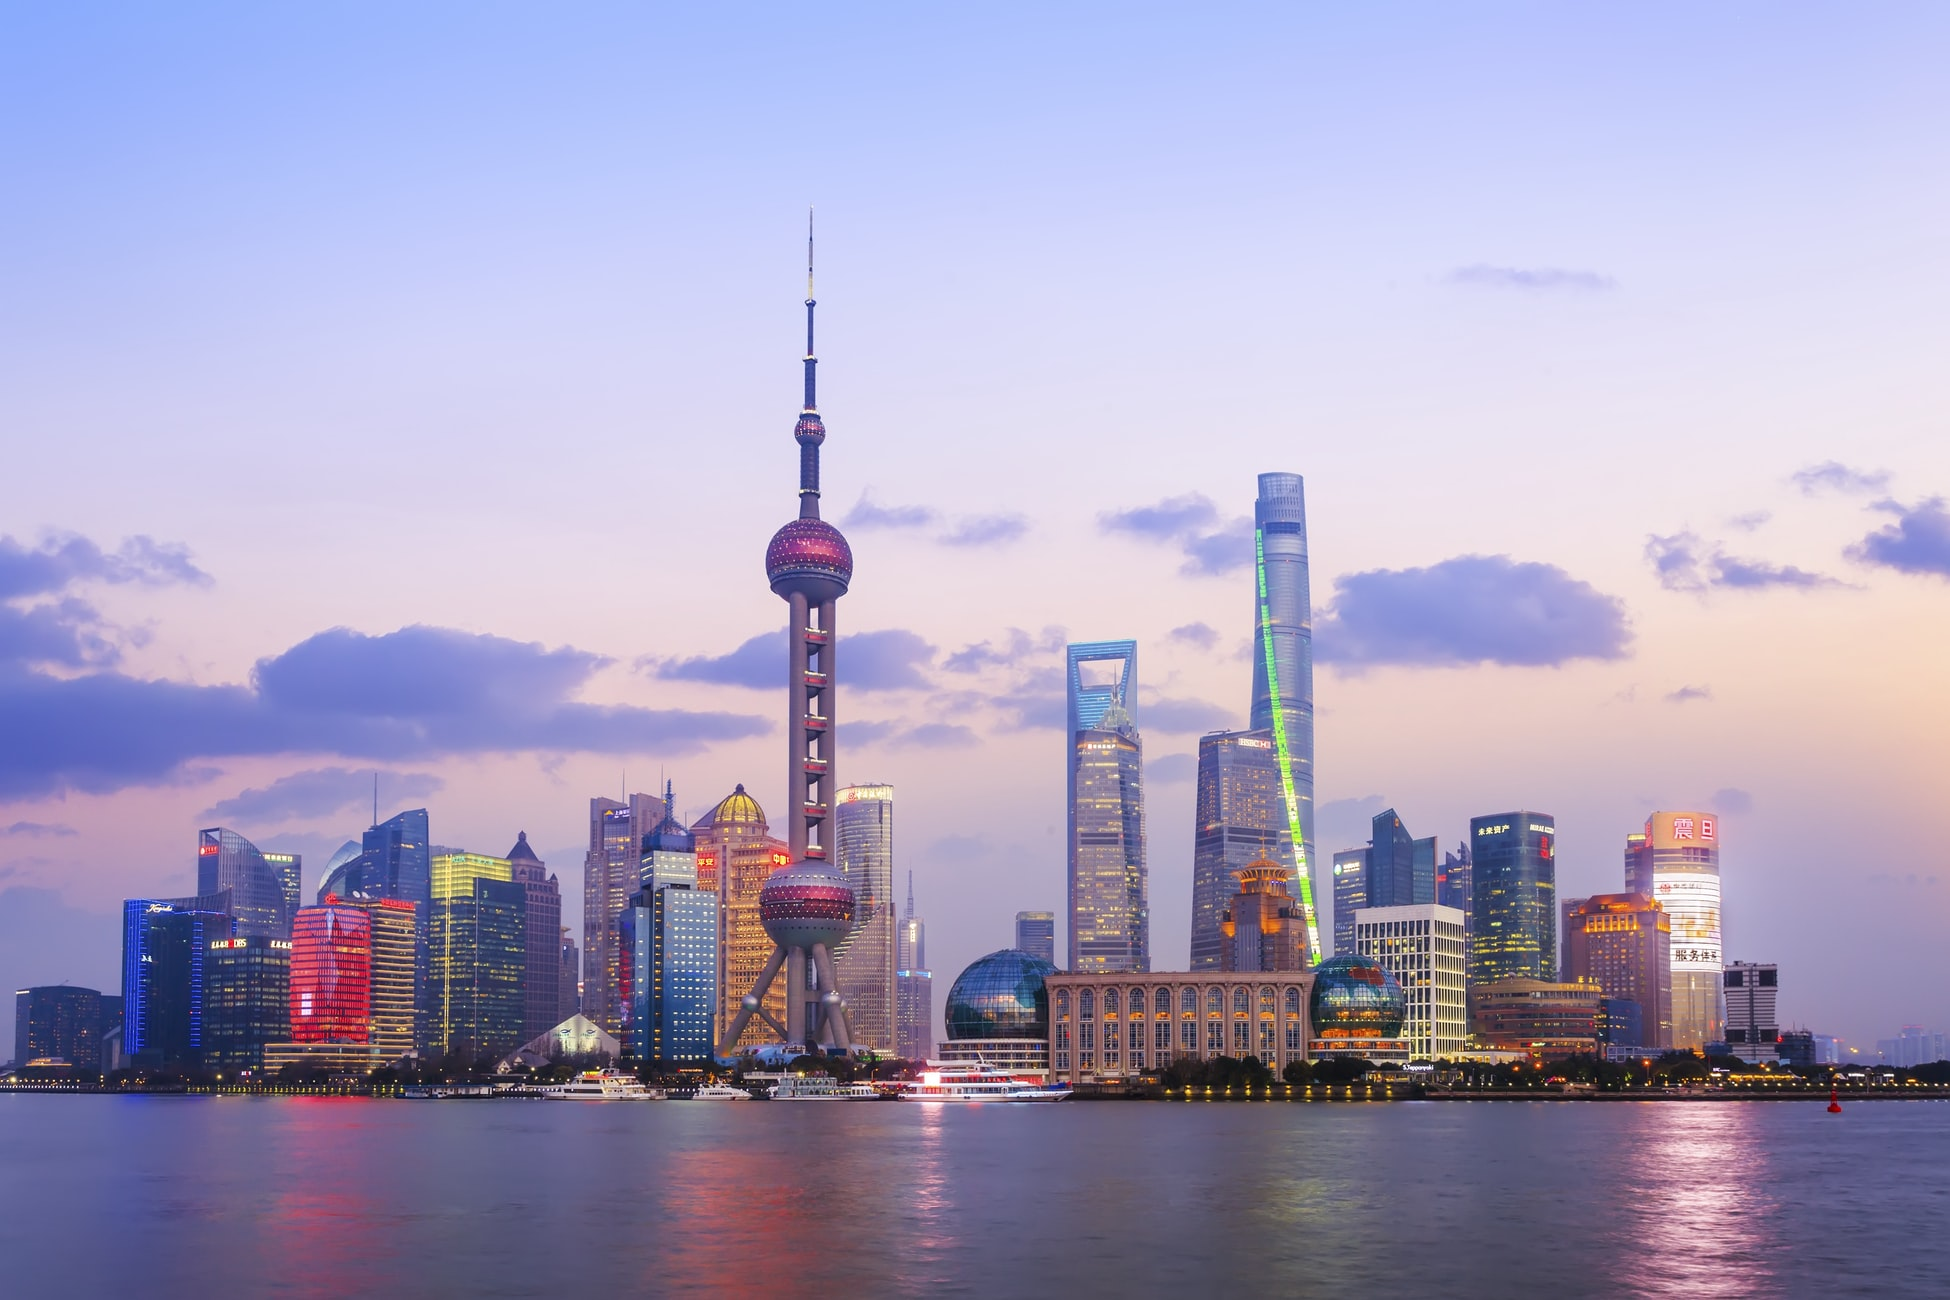 The Shanghai skyline at dusk